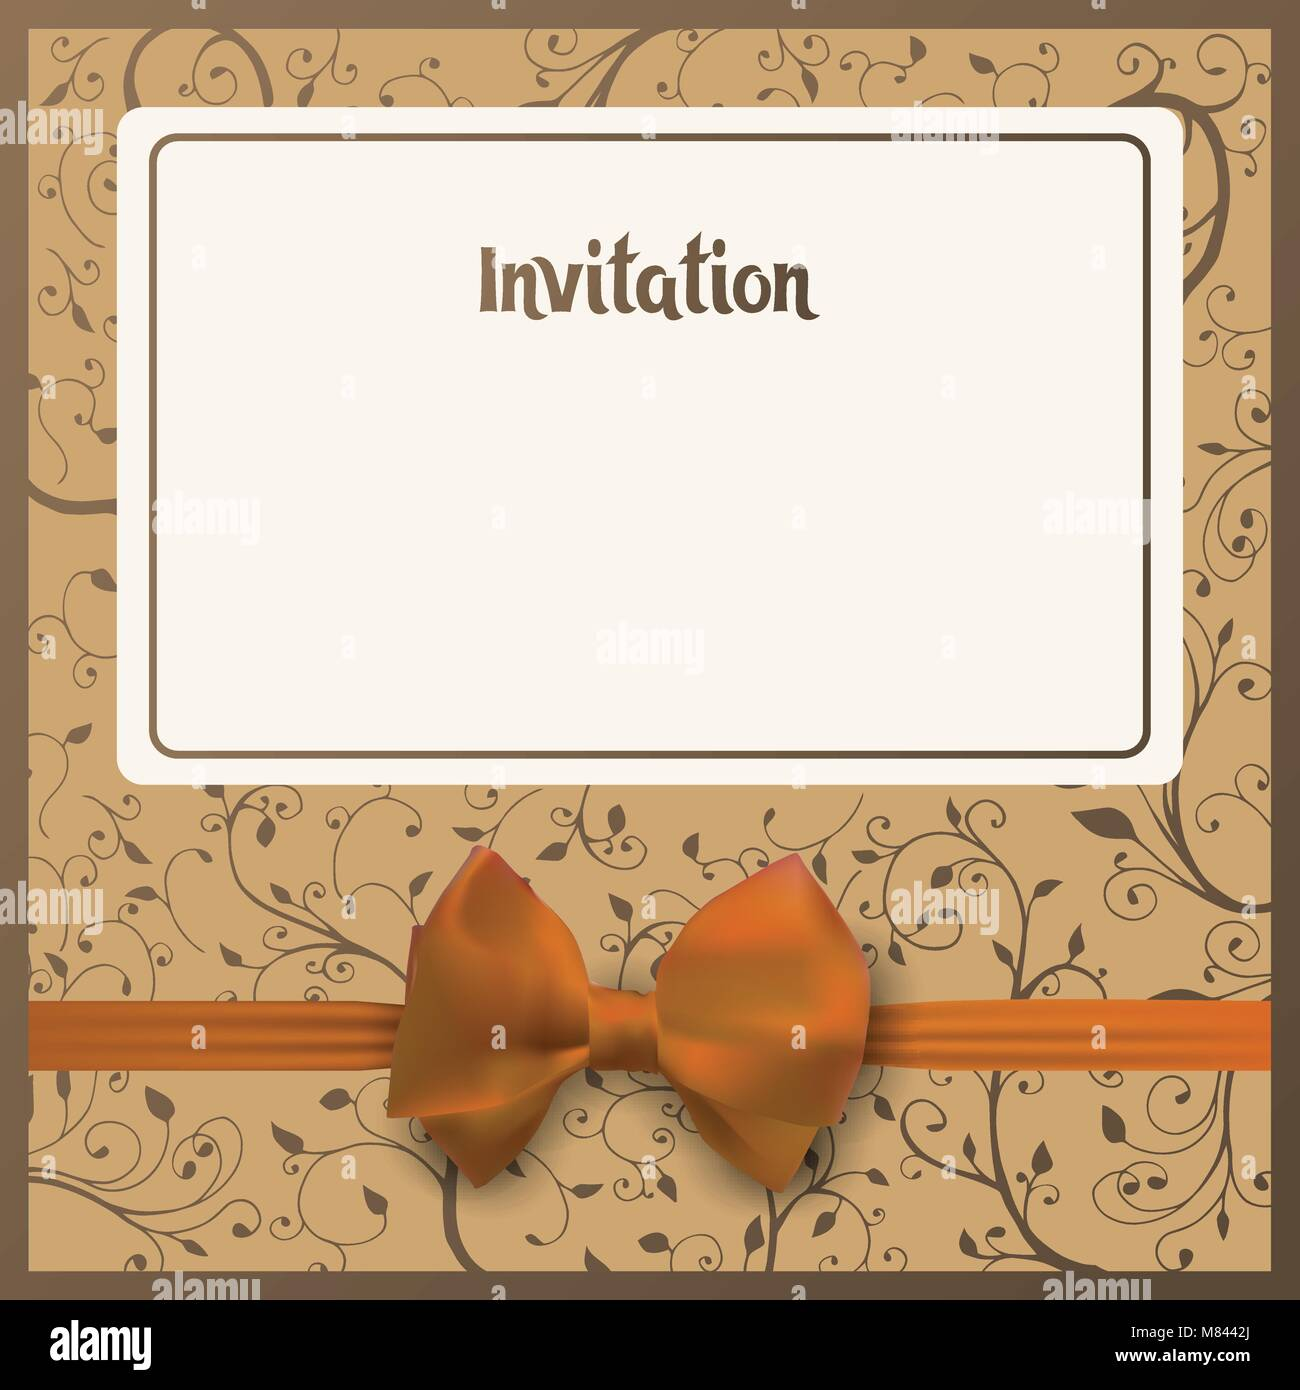 Invitation postcard. Beige background with place for your text. Yellow bow with ribbon. Greeting card vector illustration. - Stock Vector